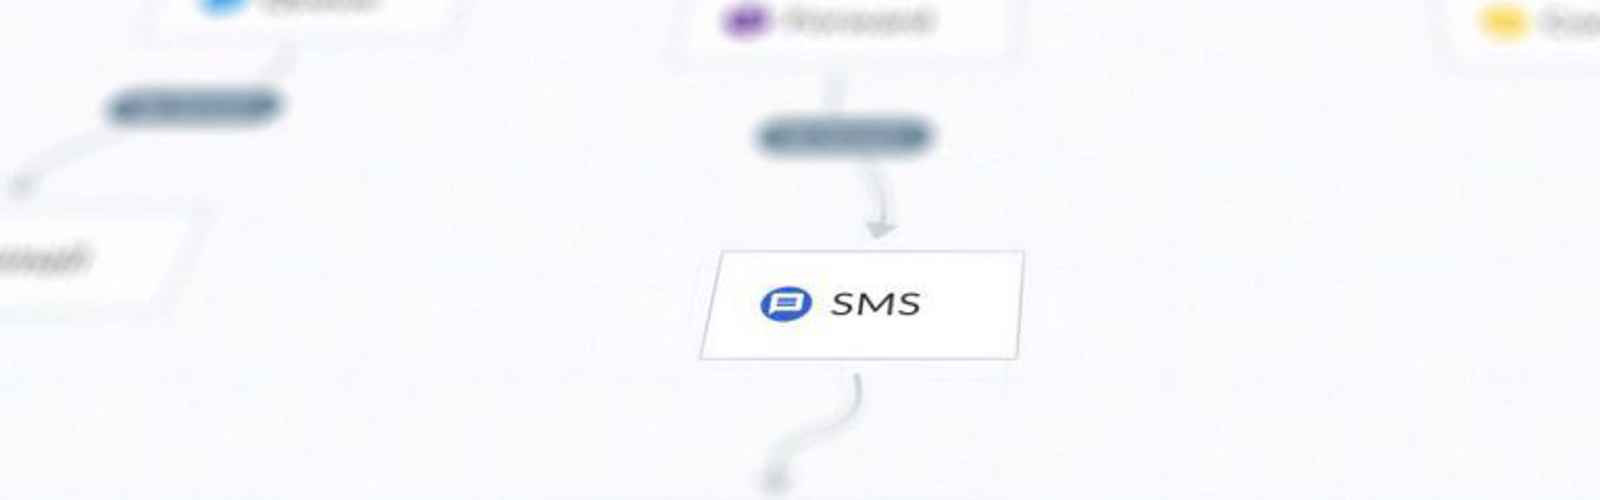 New Automated SMS Service from Telzio